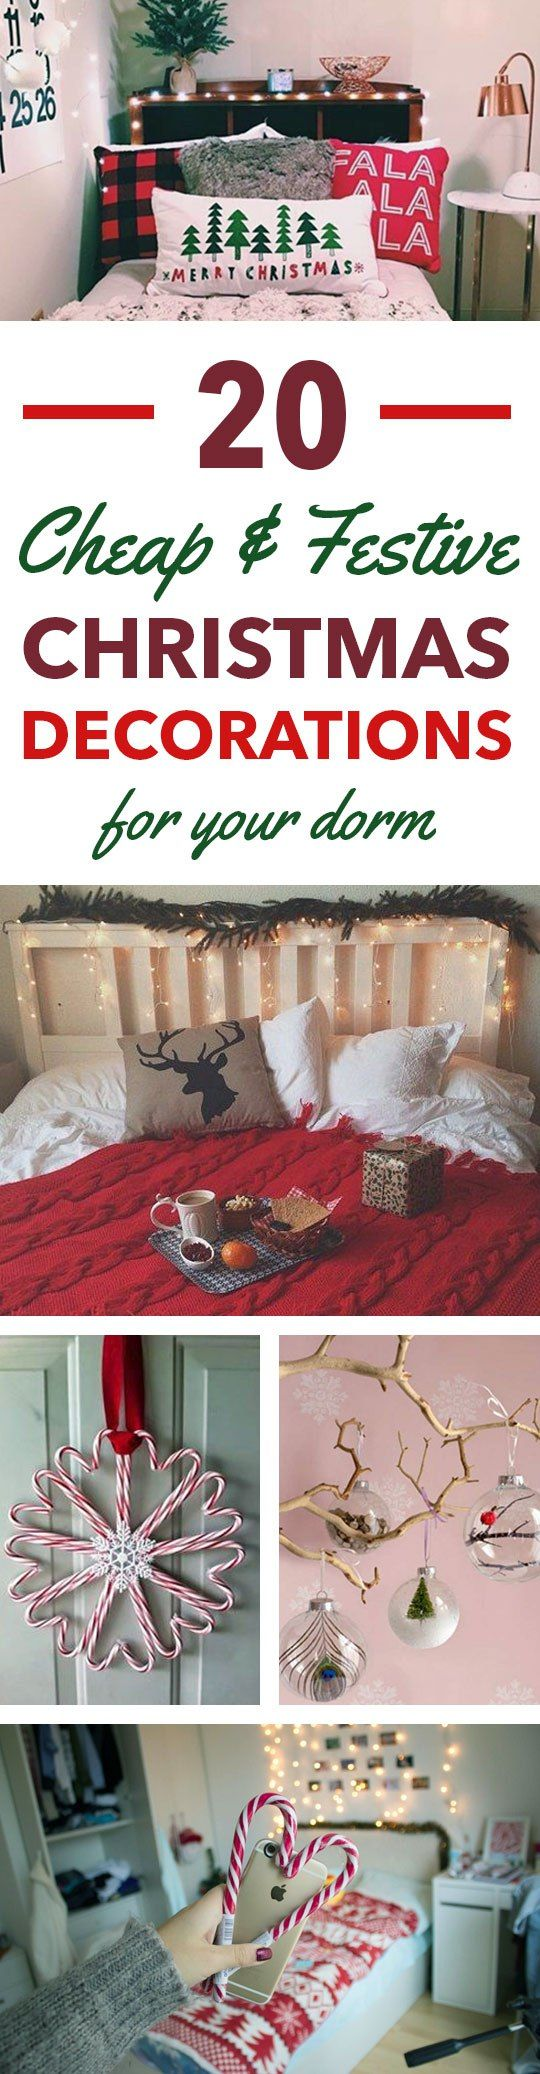 Best 25+ Cheap dorm decor ideas on Pinterest | Diy dorm decor, Diy ...